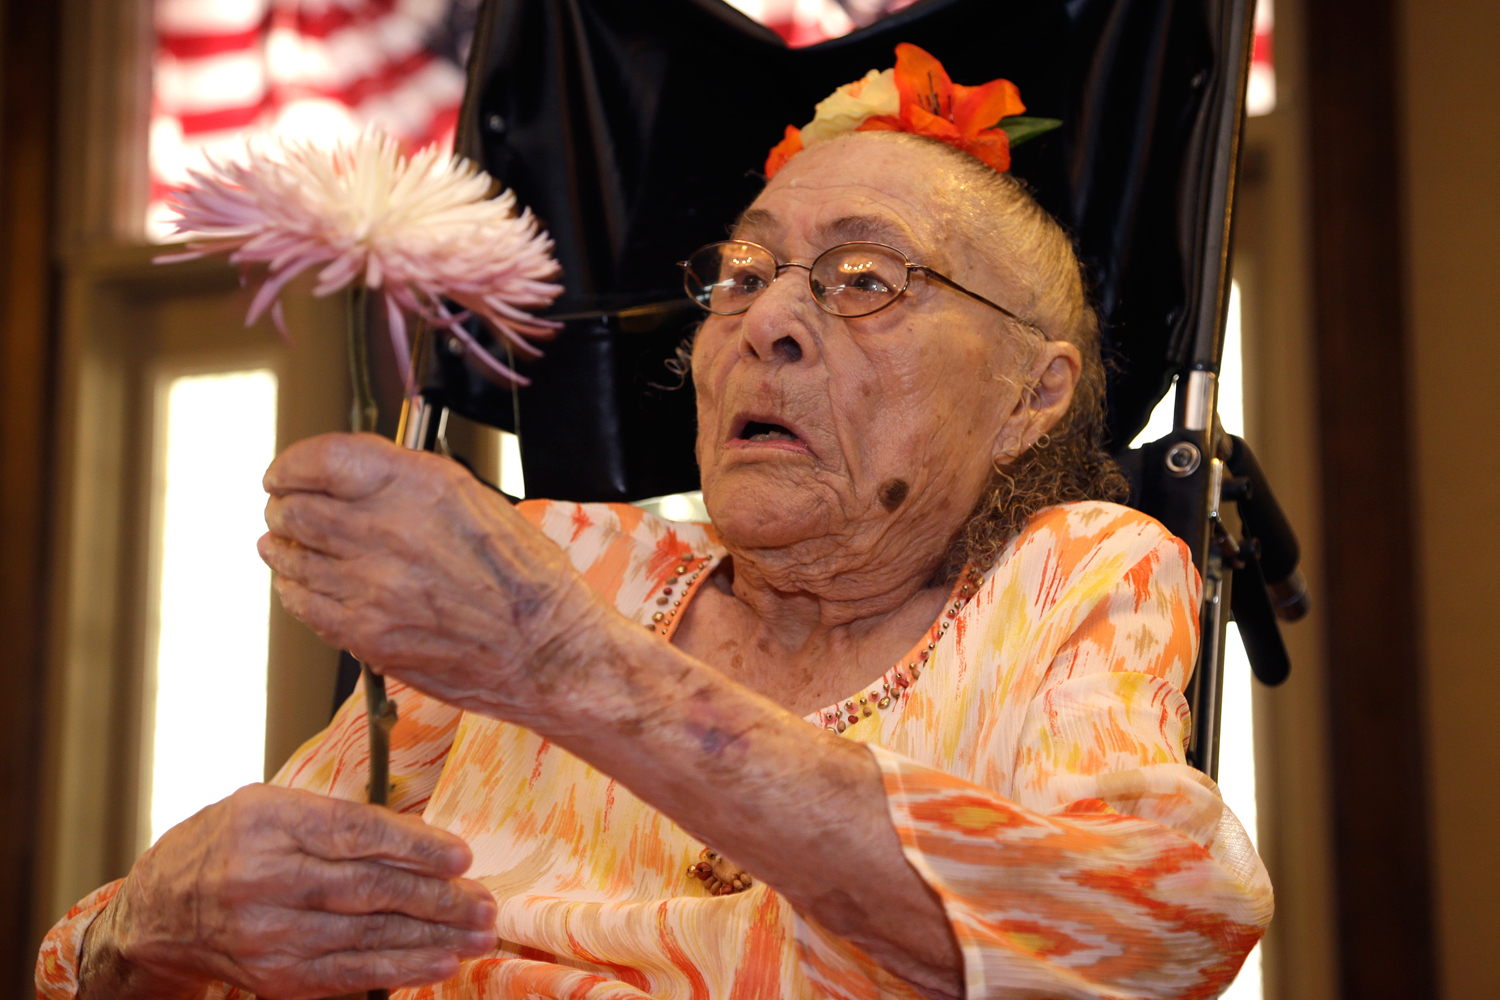 Gertrude Weaver holds a flower given to her a day before her 116th birthday at Silver Oaks Health and Rehabilitation in Camden, Ark on July 3, 2014.